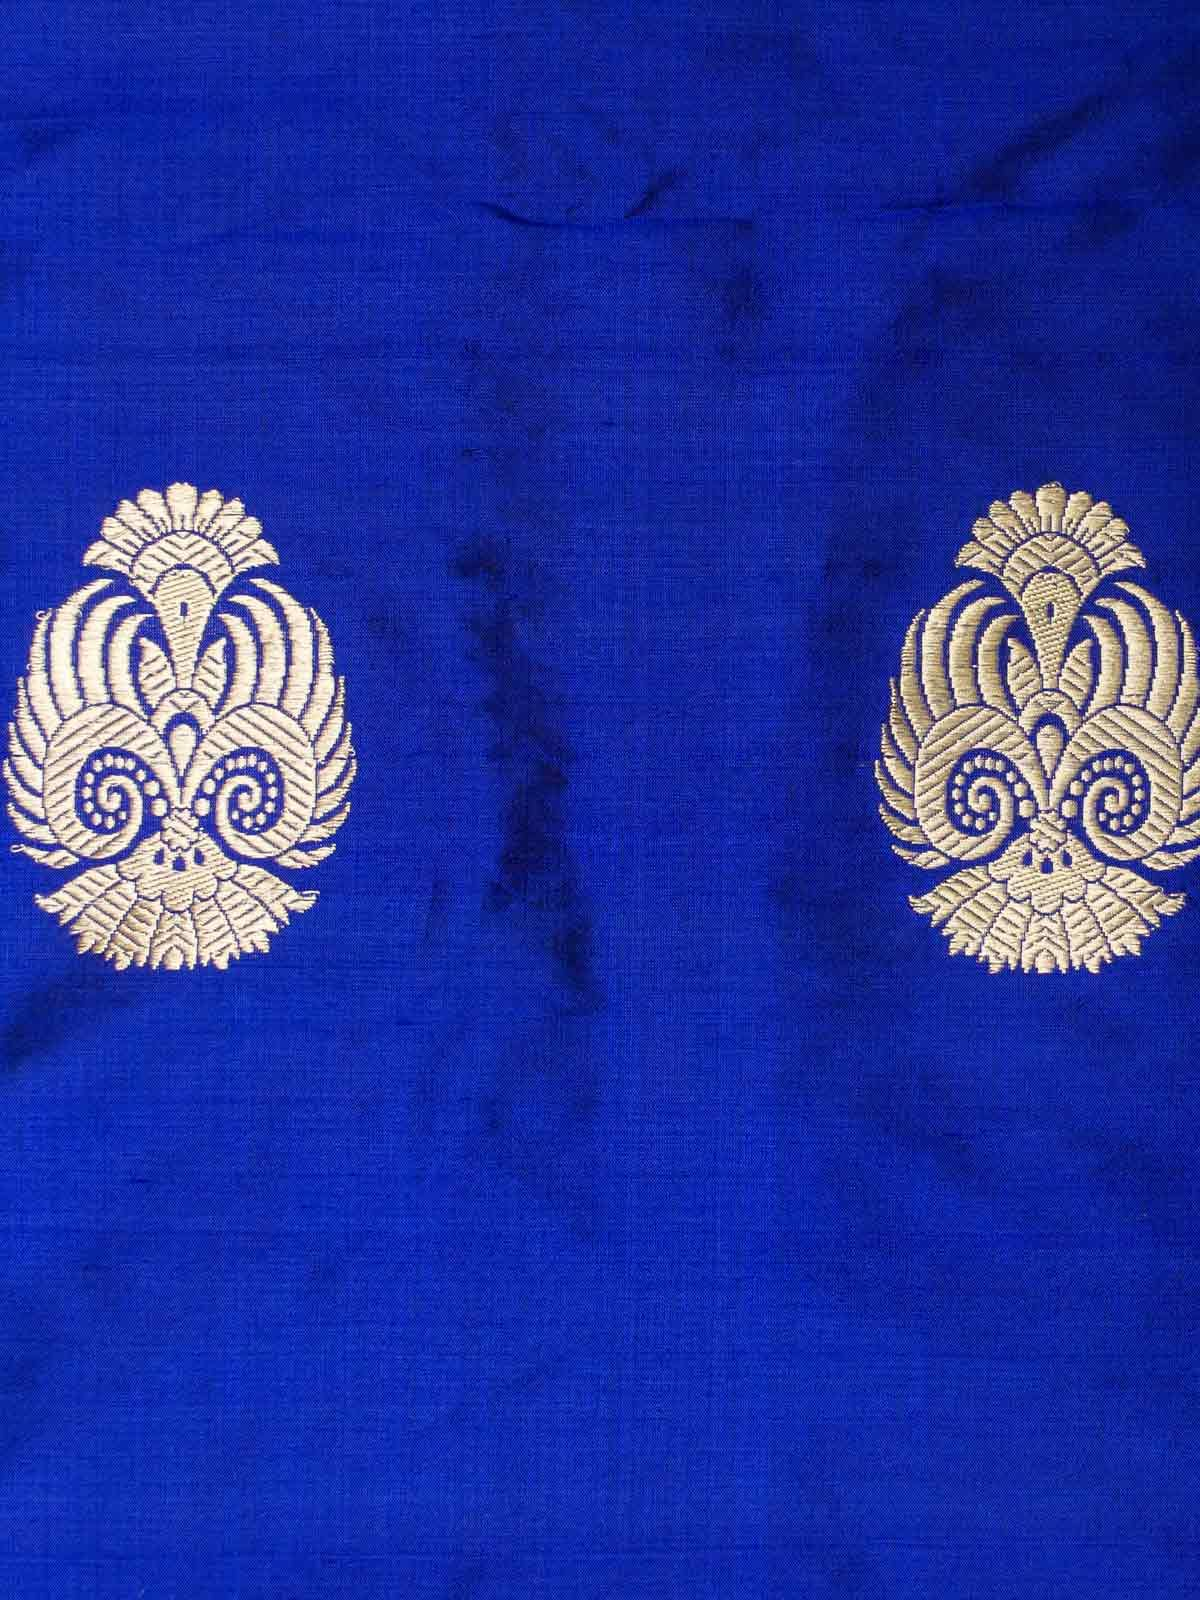 Blue golden woven zari booti banarsi silk fabric